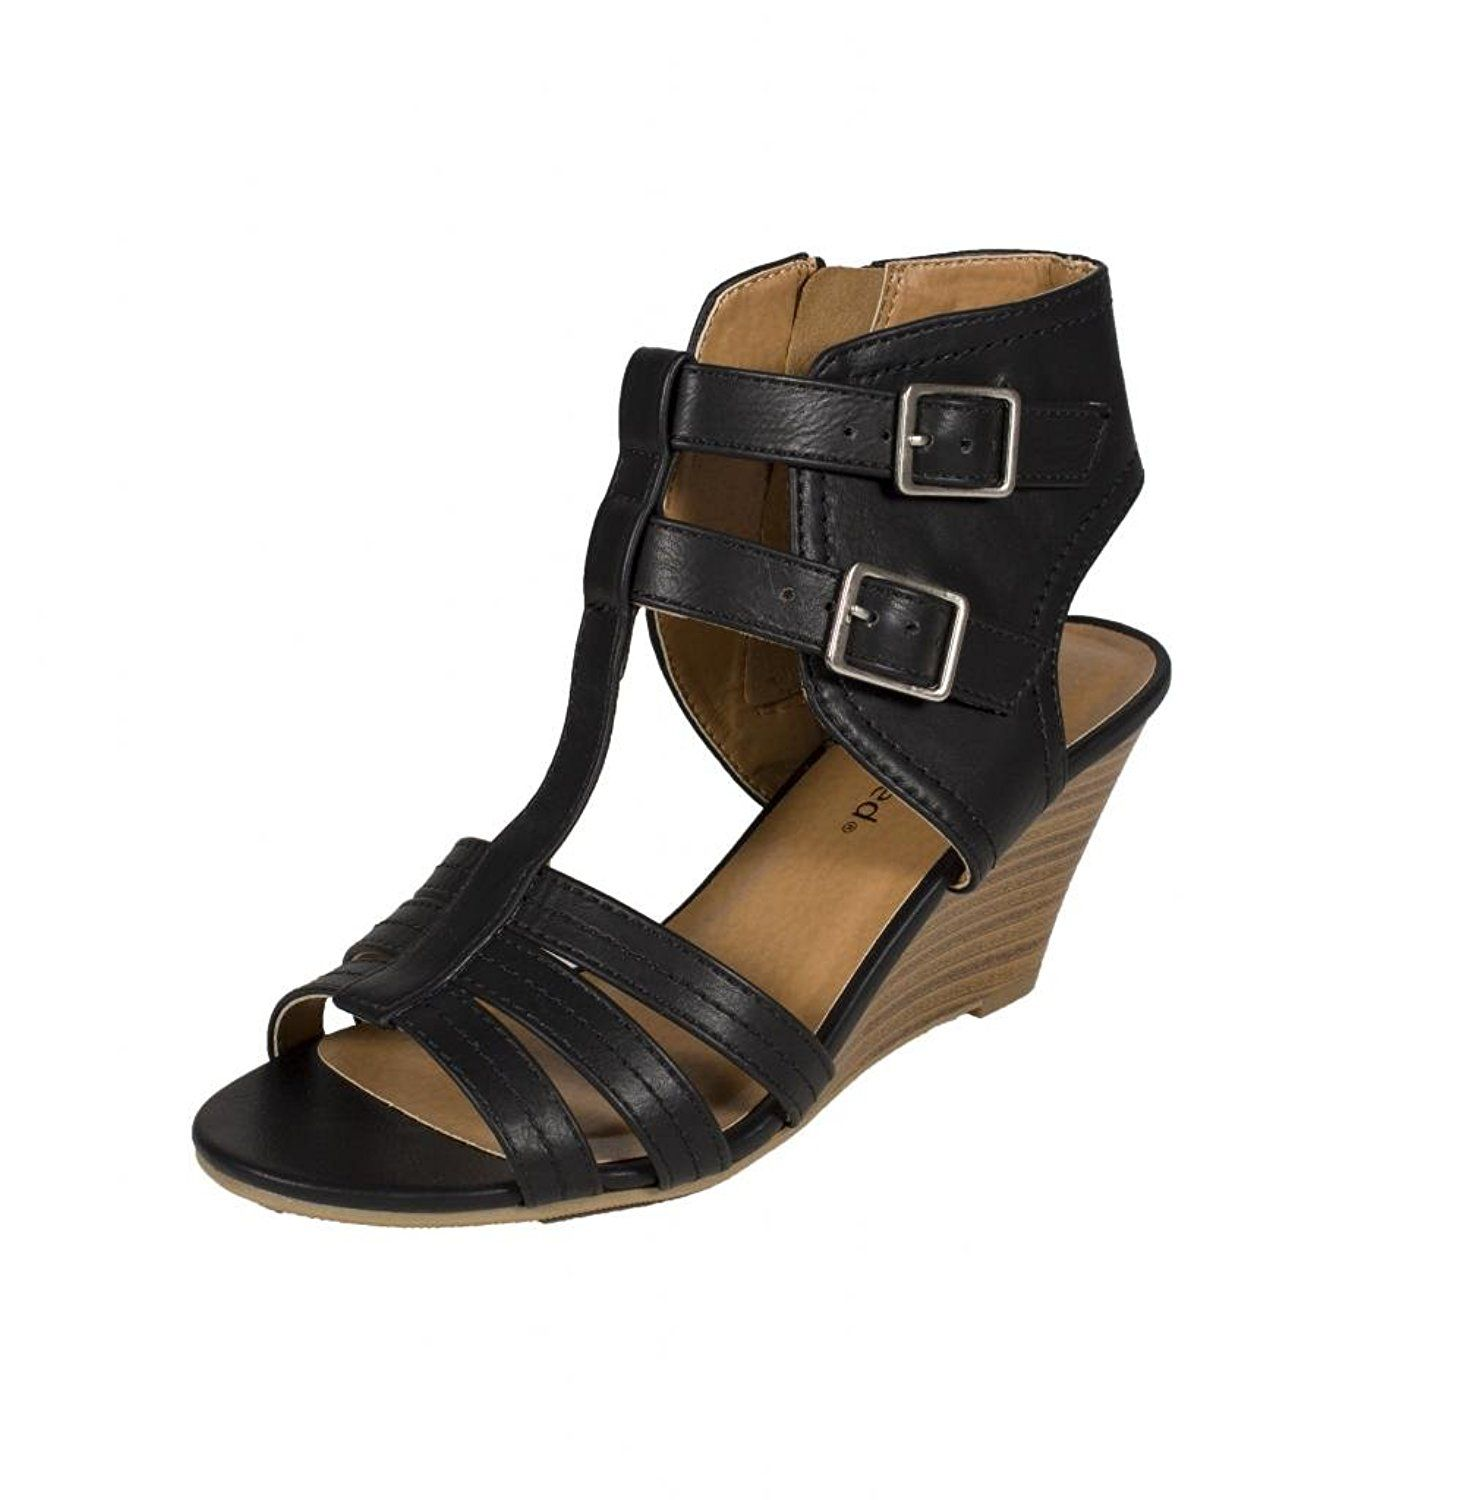 fa6827e569f City Classified Women s Heart Strappy Open Toe Gladiator Multiple Buckle  Mid Heel Sandal Black Leatherette    See this great image at Sandals board